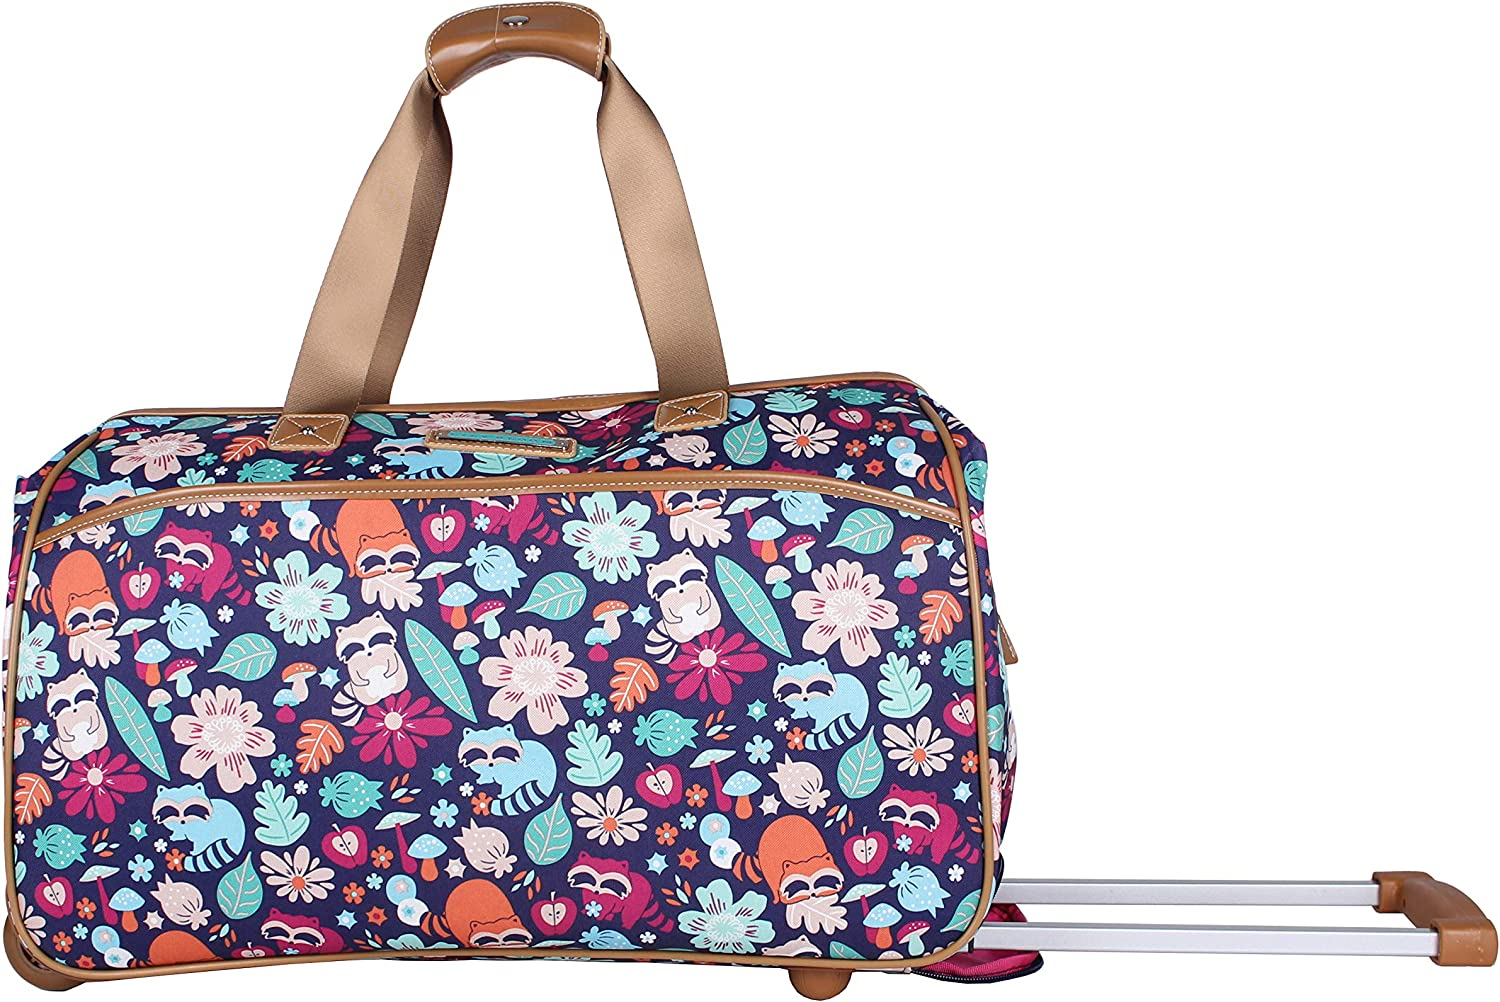 Lily Bloom Luggage Designer Pattern Suitcase Wheeled Duffel Carry On Bag (22in, Raccoon Harvest Black)